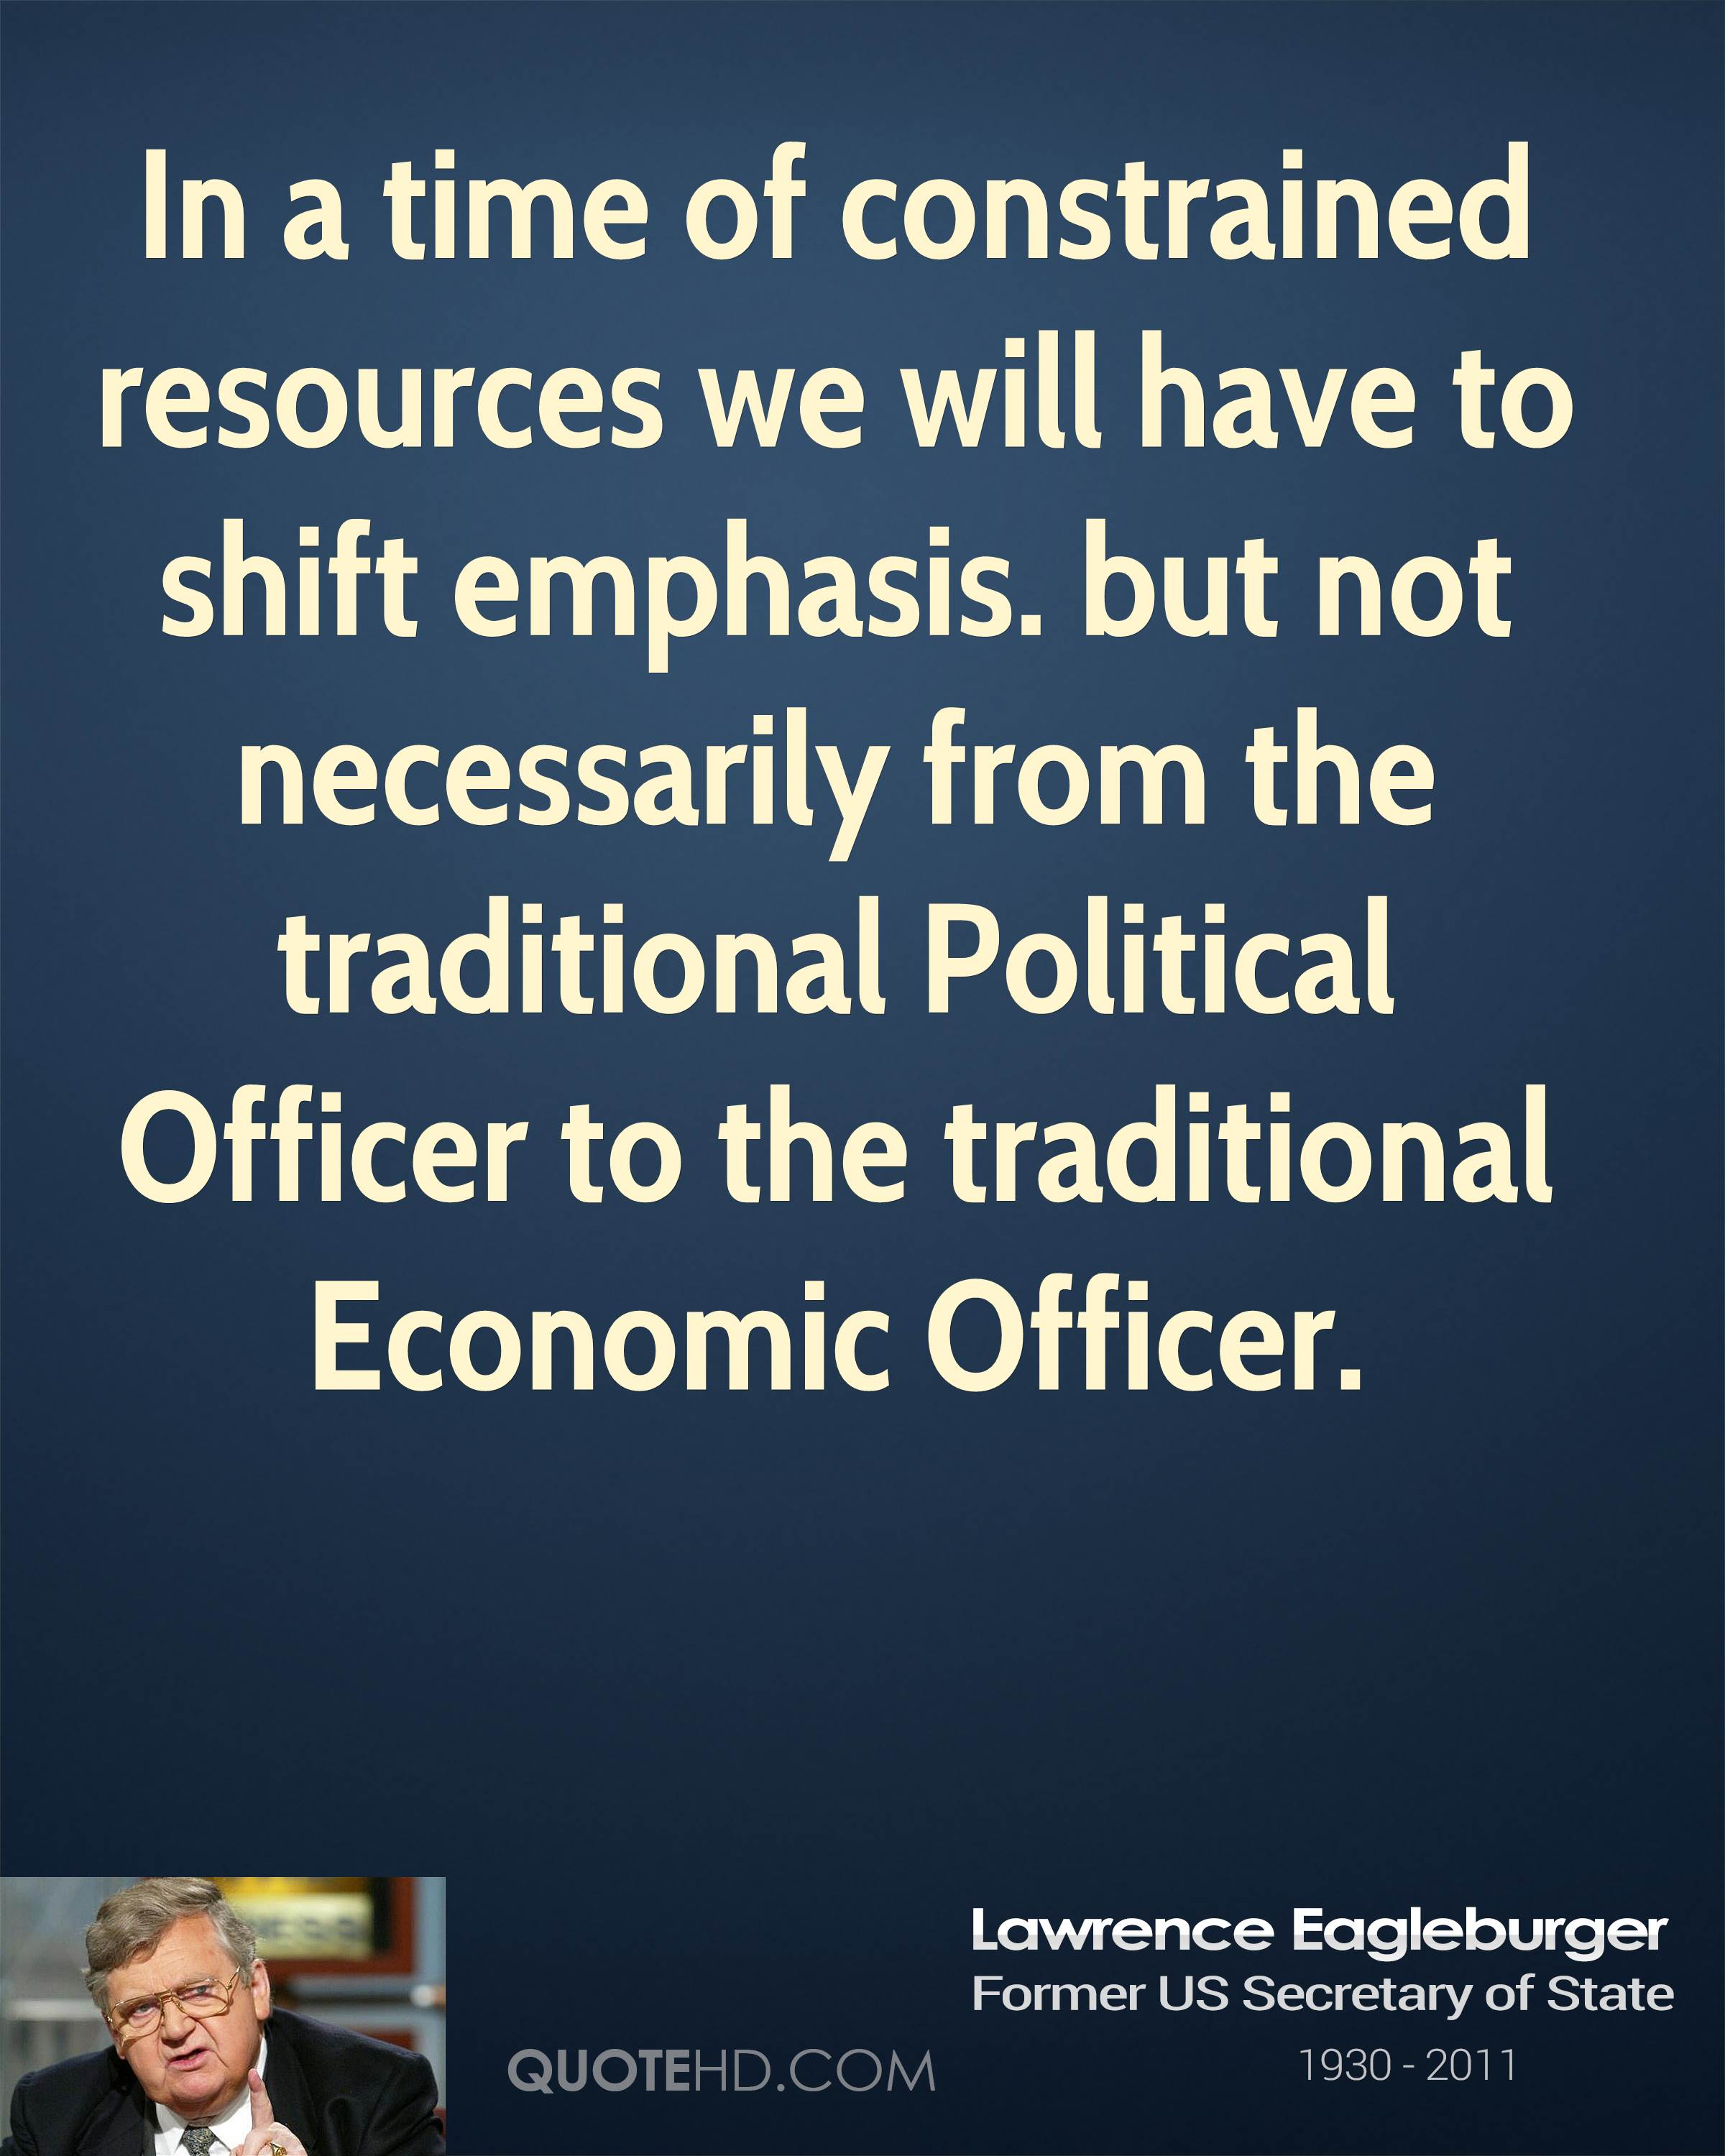 In a time of constrained resources we will have to shift emphasis. but not necessarily from the traditional Political Officer to the traditional Economic Officer.